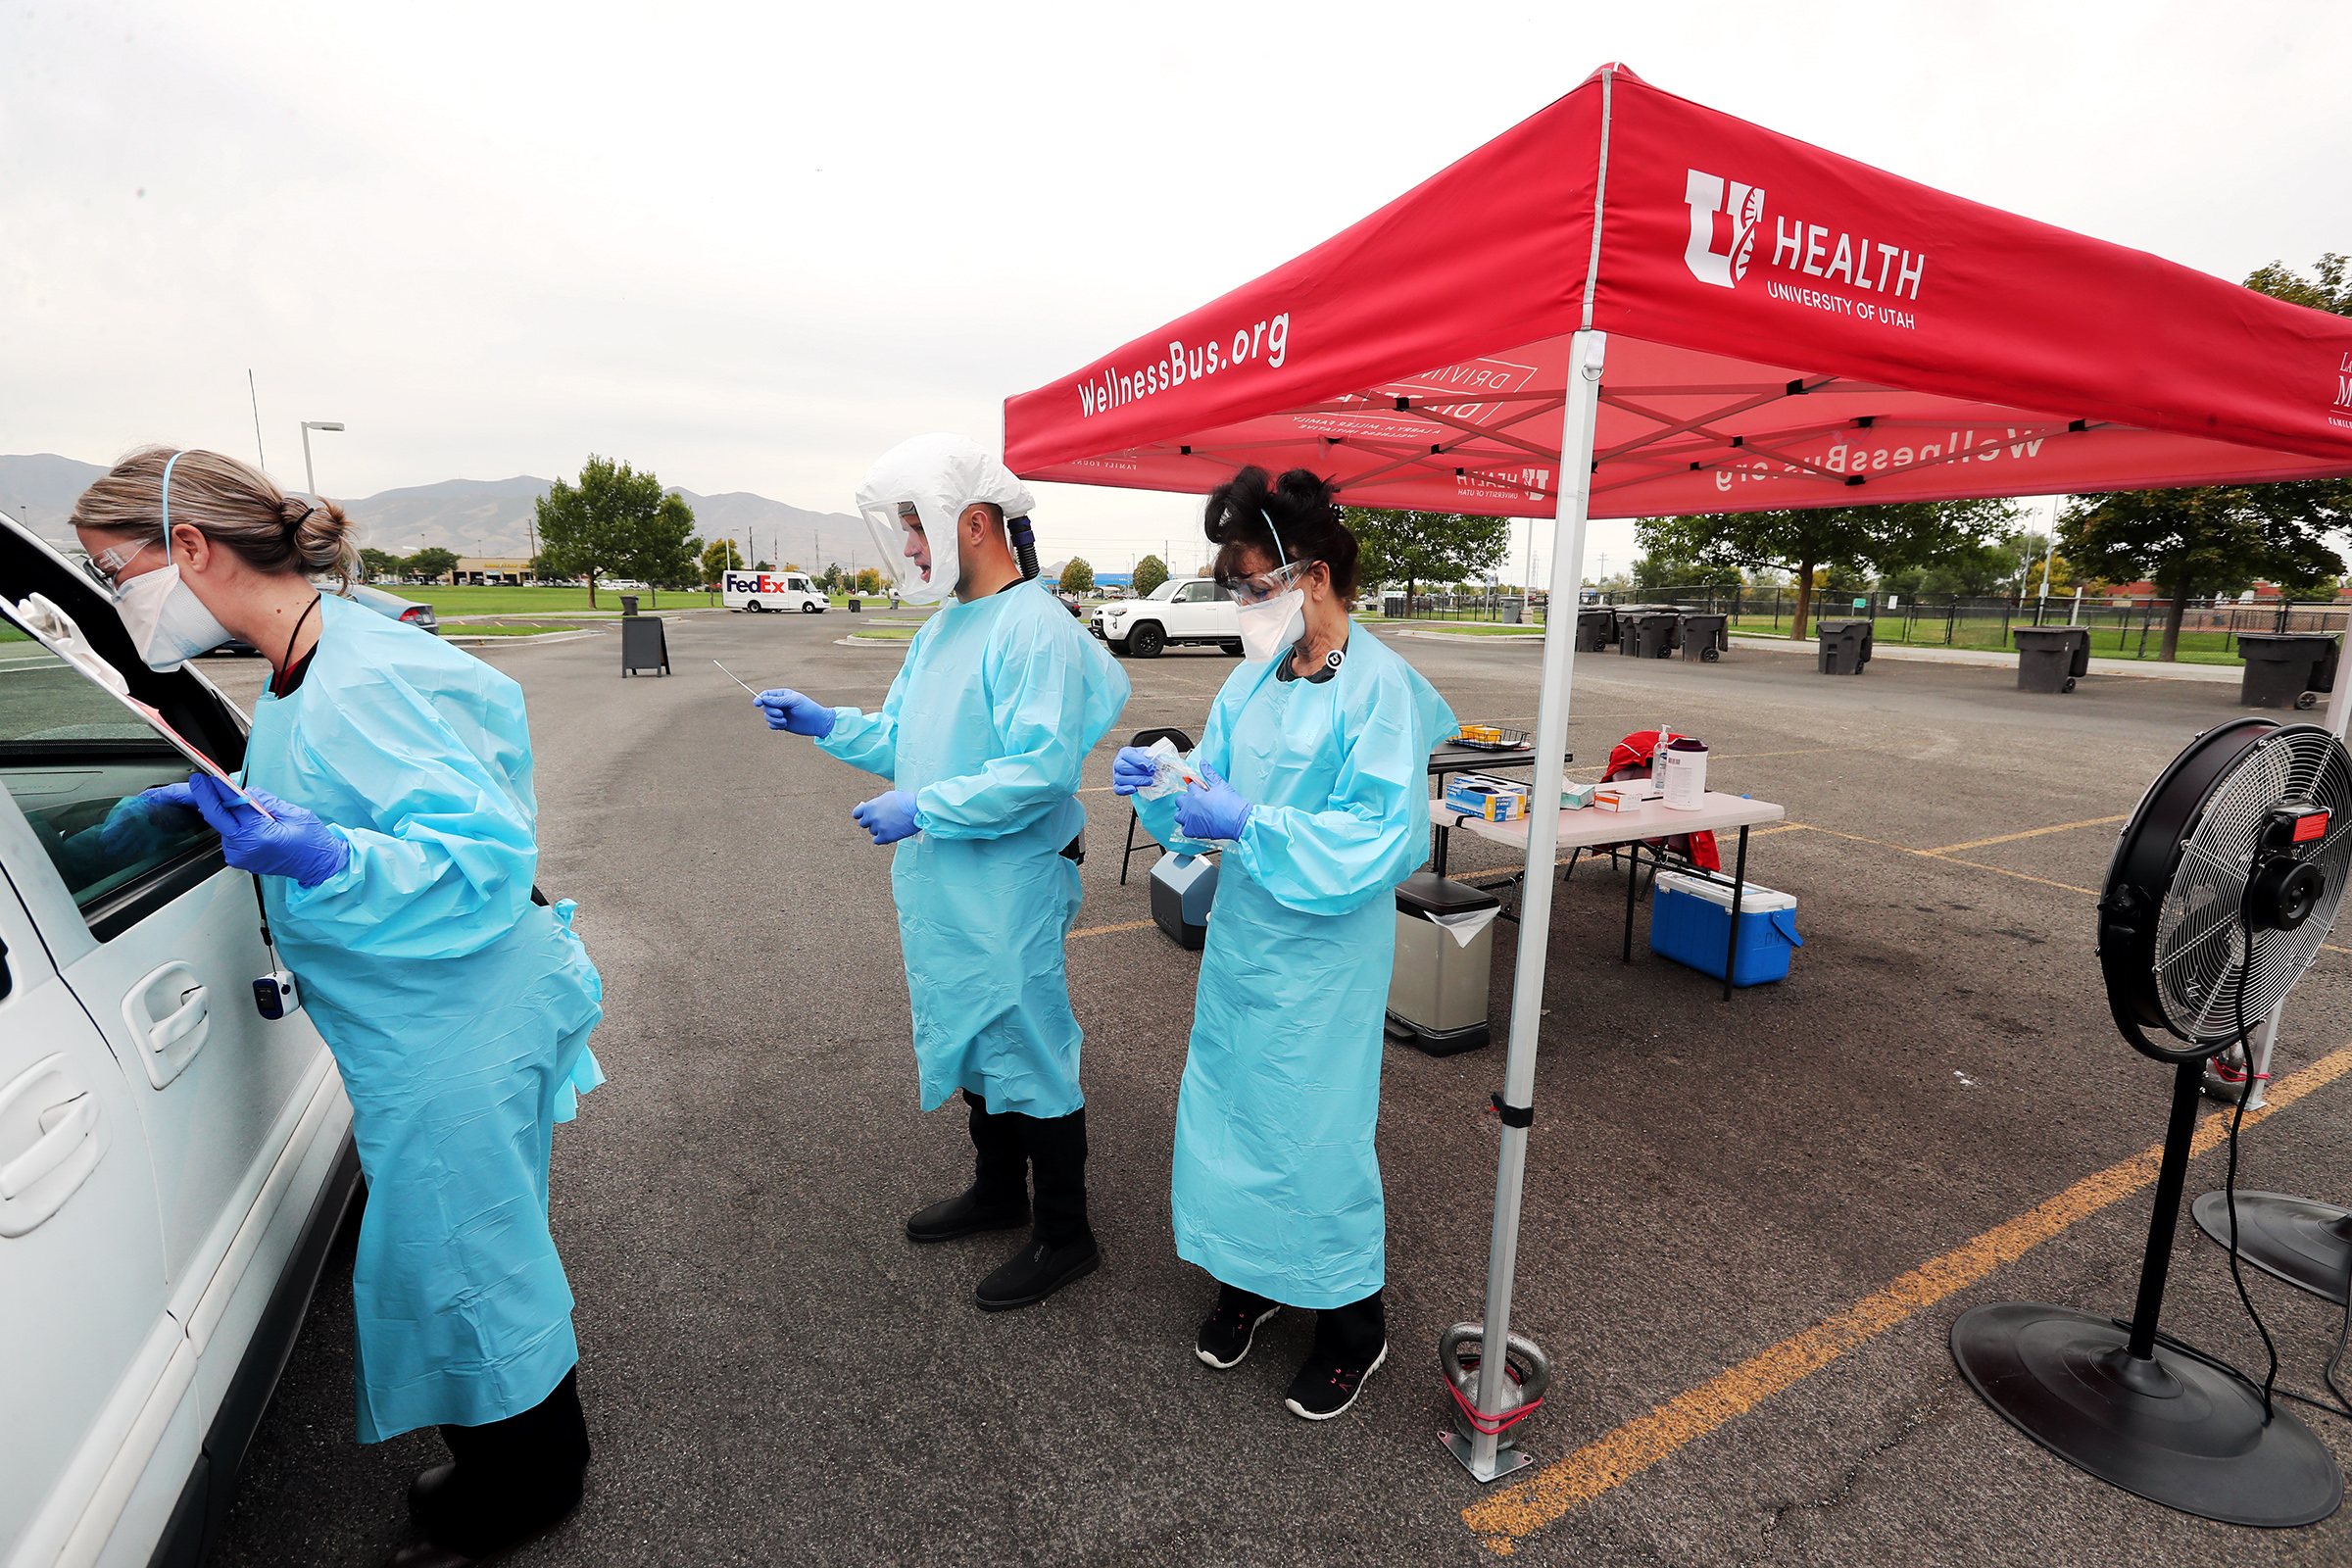 Heather Wetch, Caleb Stepaniak and Marina Hays conduct tests as the University of Utah's WellnessBus conducts COVID-19 testing at West Valley City's Centennial Park on Monday, Aug. 31, 2020.